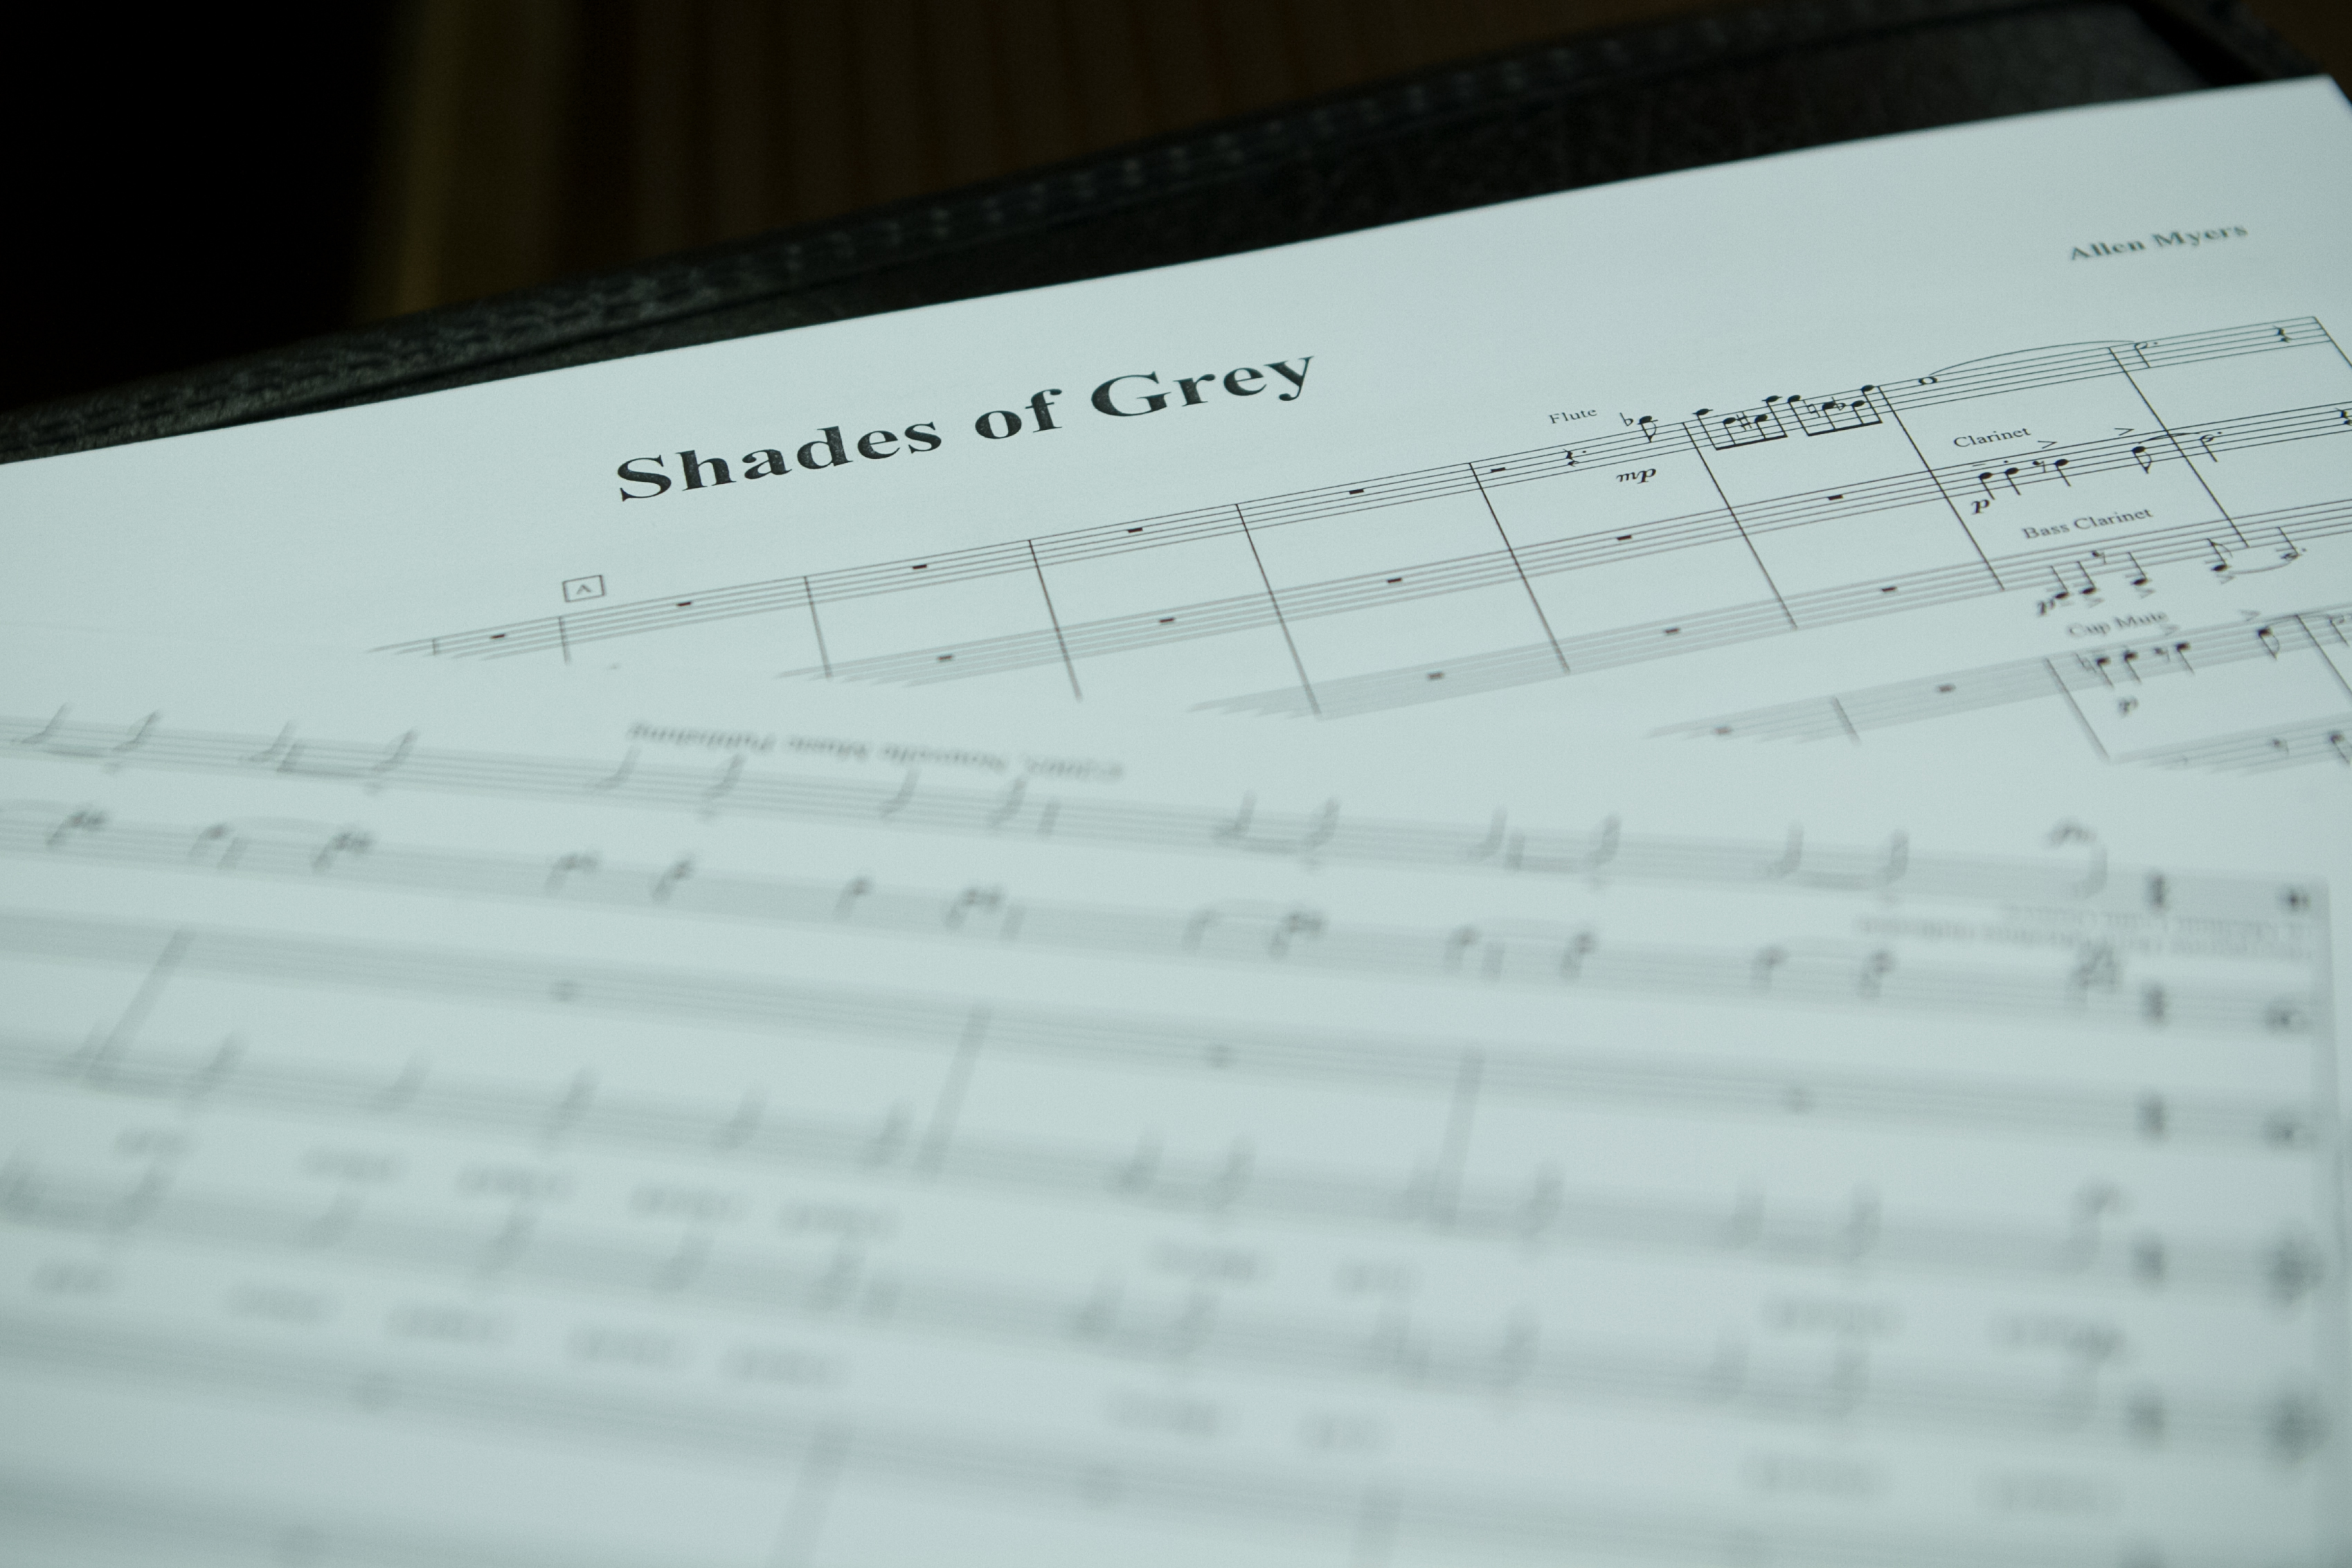 shades of grey first page photo